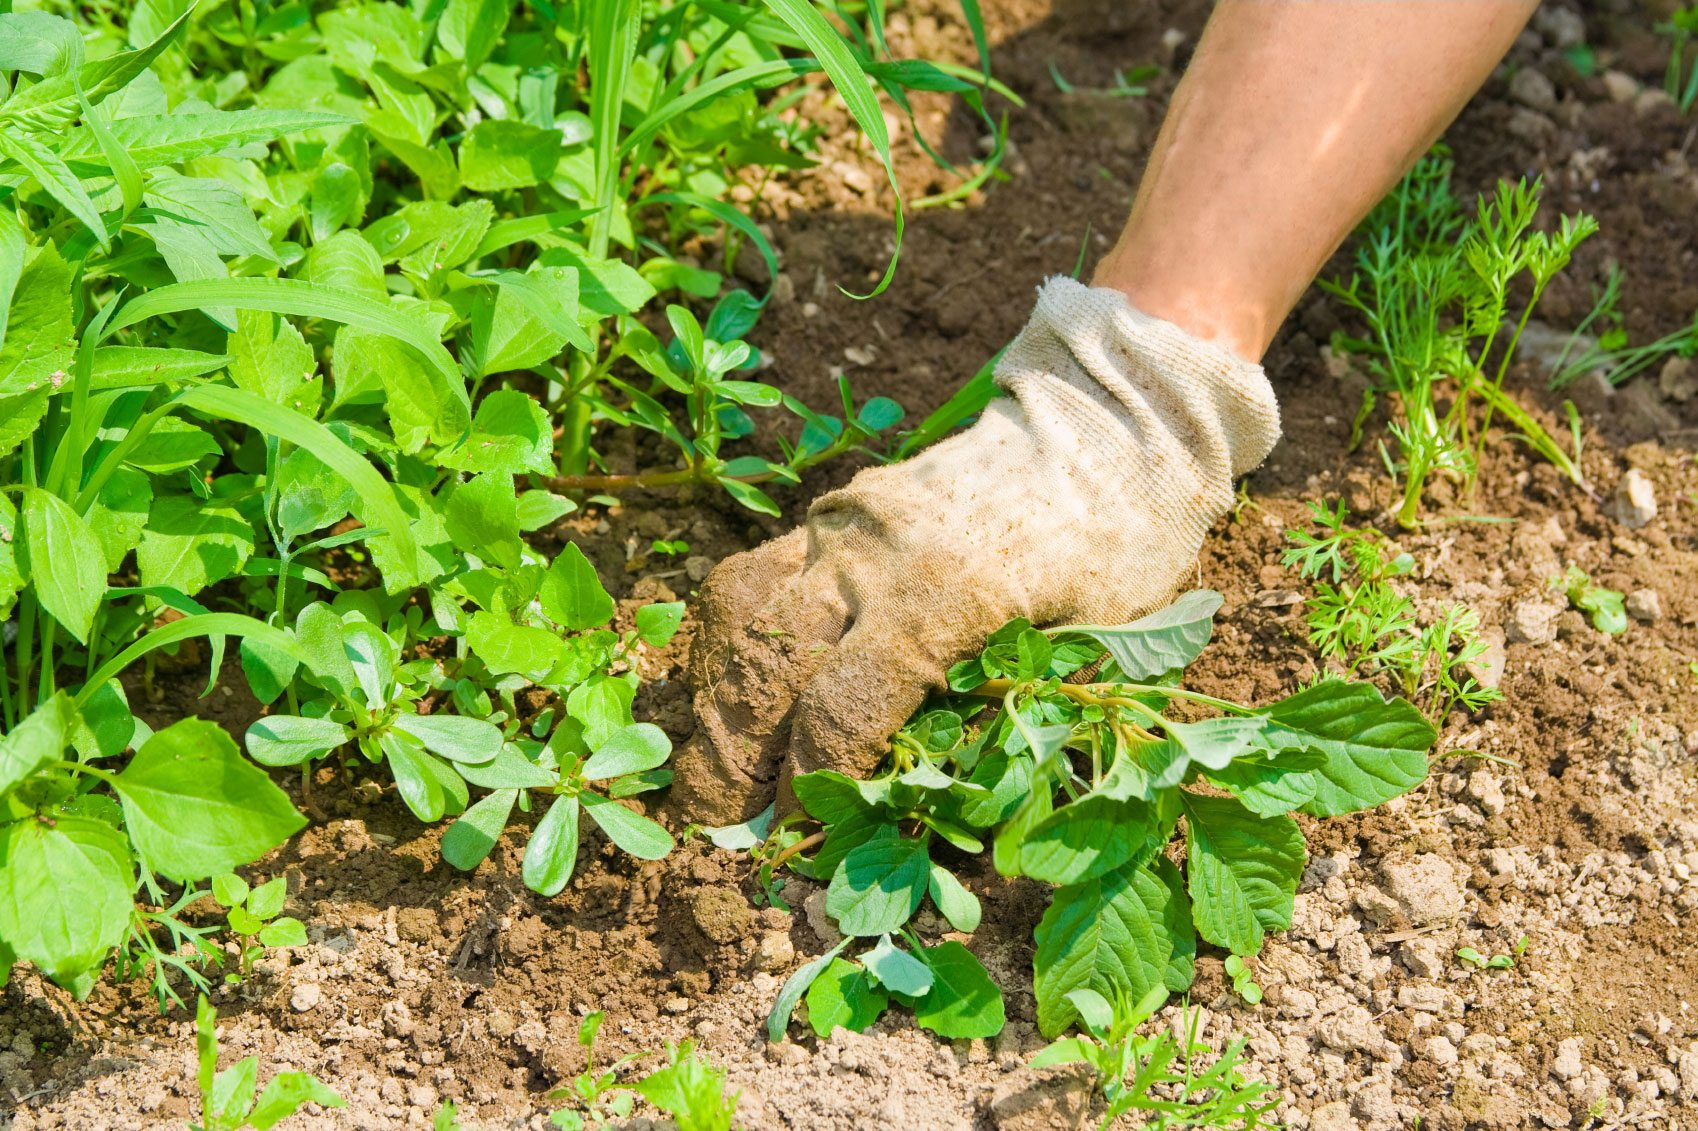 Vegetable Weed Control How To Keep Weeds Out Of A Vegetable Garden